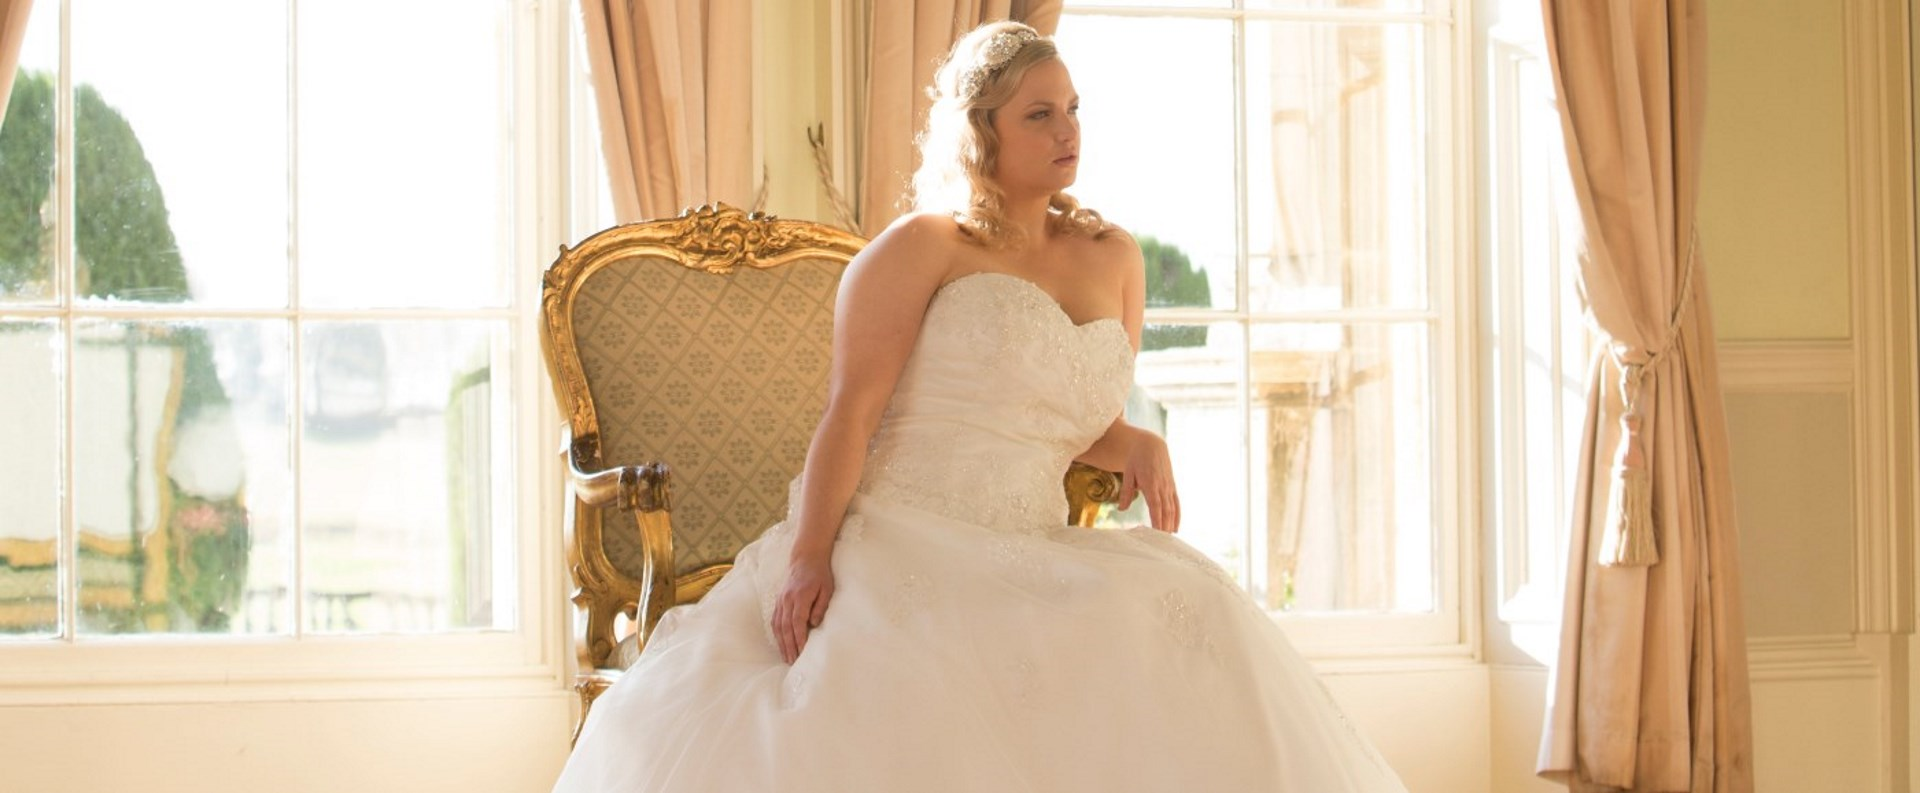 Sacha James Curvy Wedding Dresses in Carlisle from Simply Koko